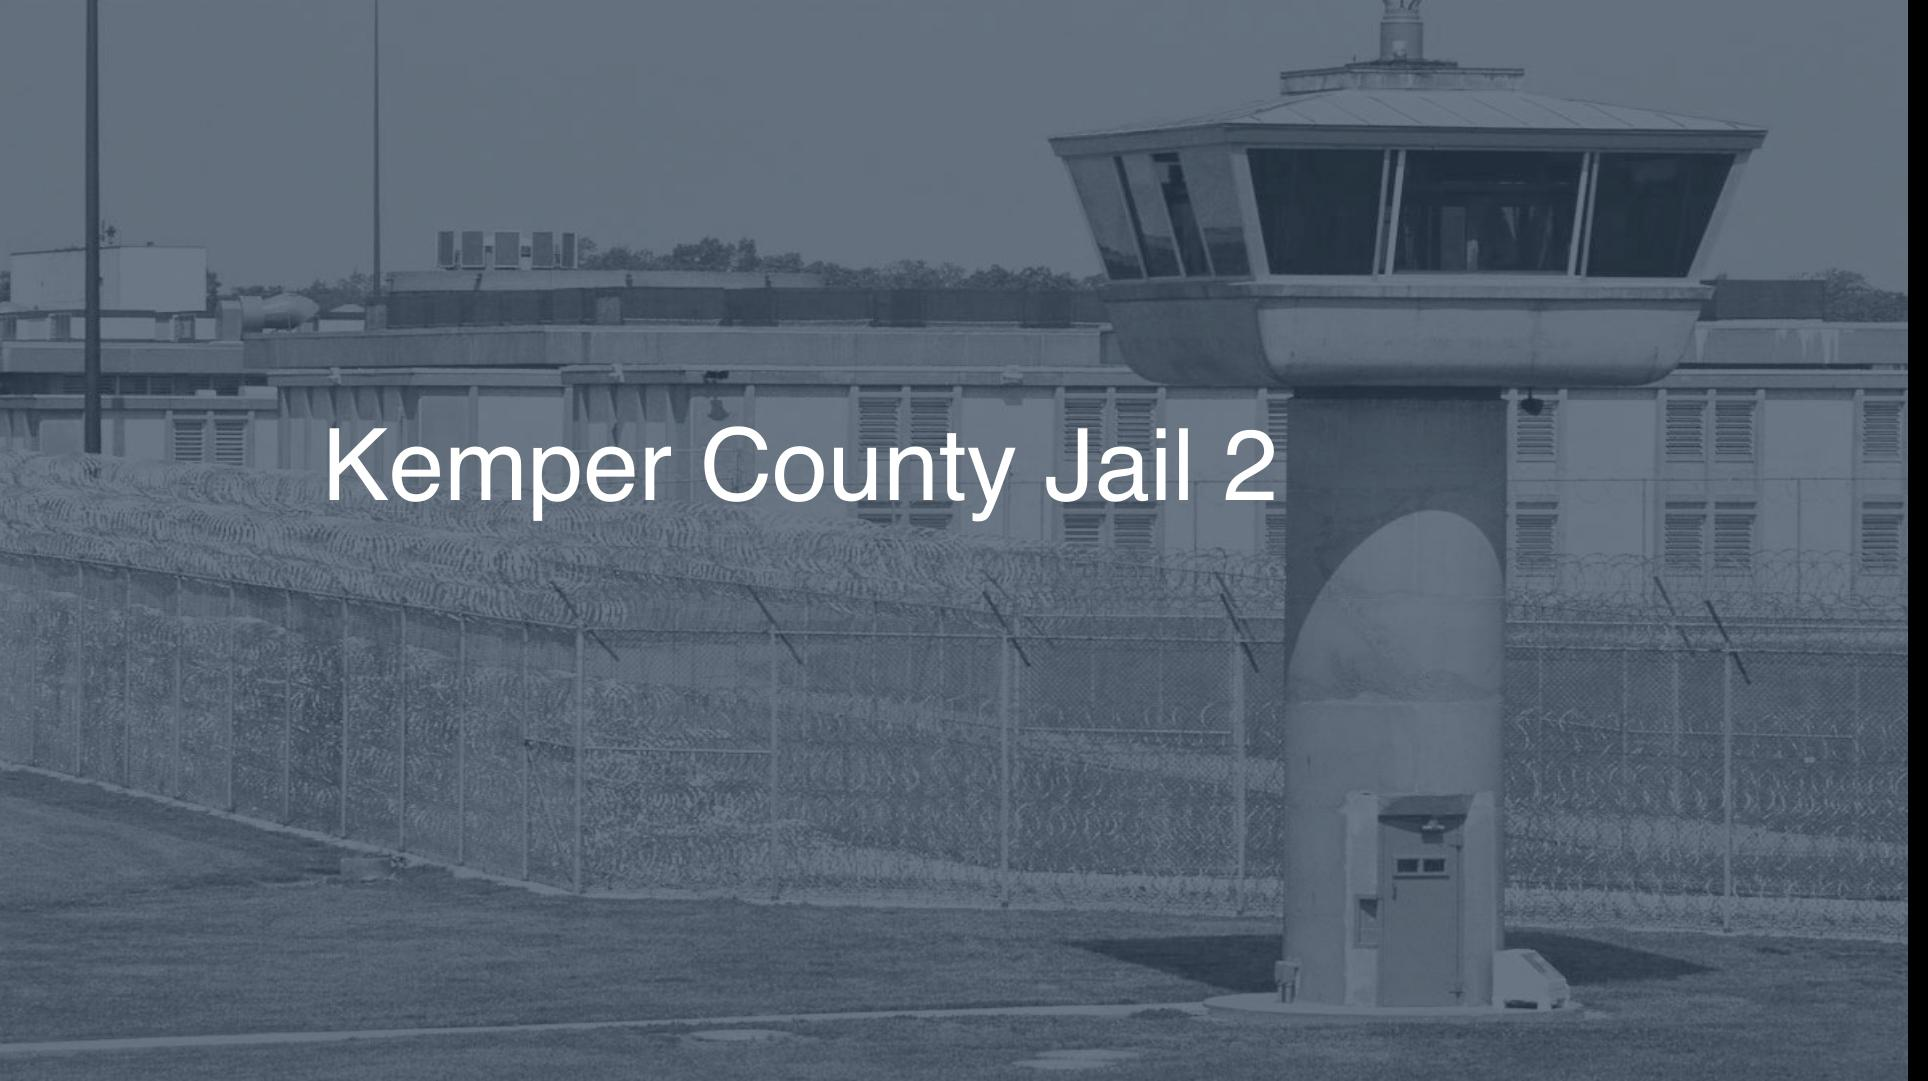 Kemper County Jail correctional facility picture